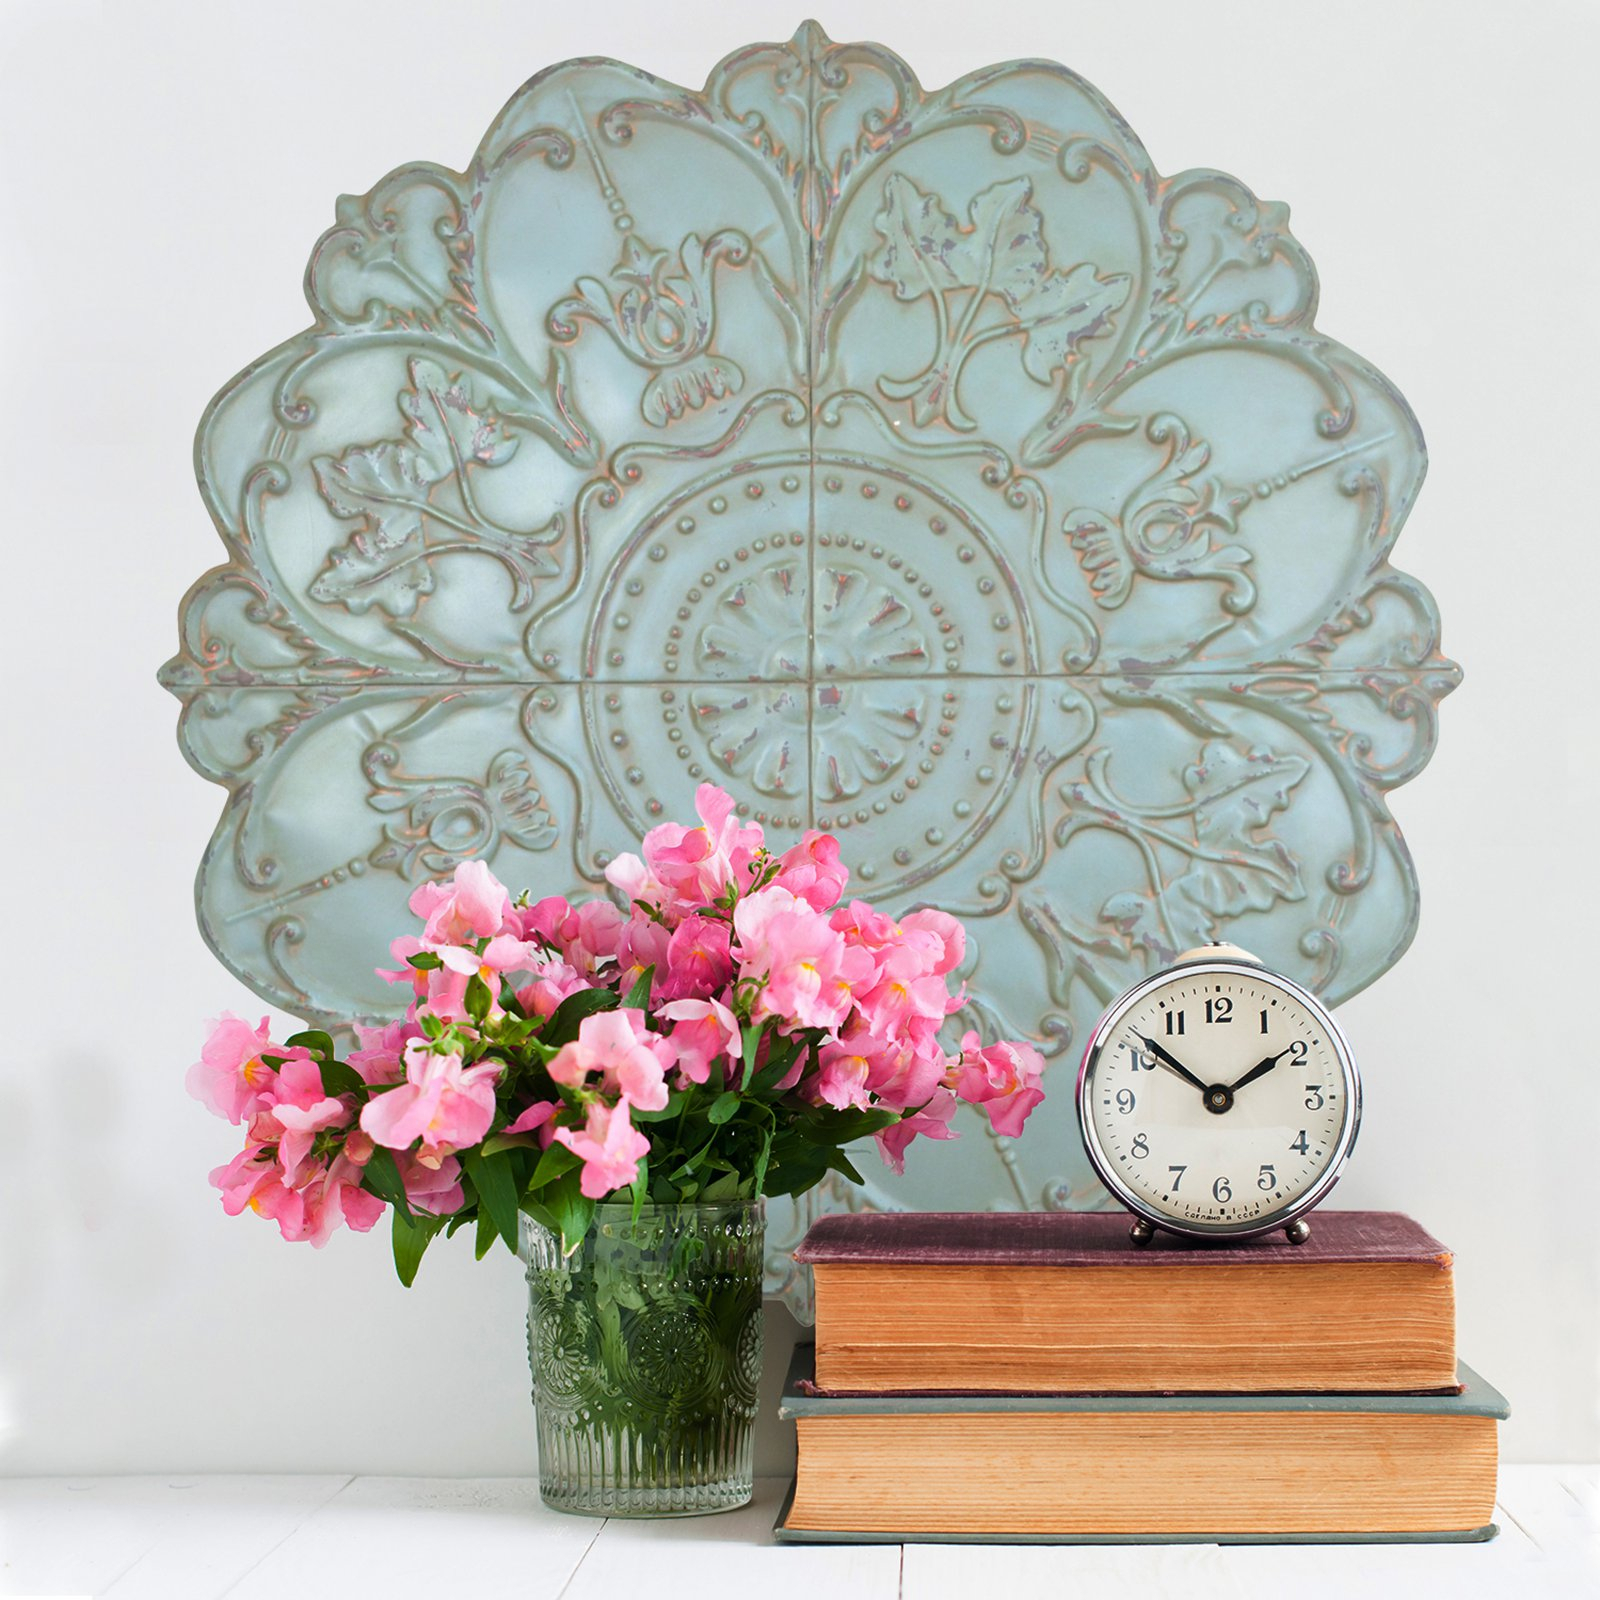 Shabby Medallion Wall Decor Throughout Trendy Stratton Home Decor Shabby Medallion Wall Decor – Walmart (View 3 of 20)